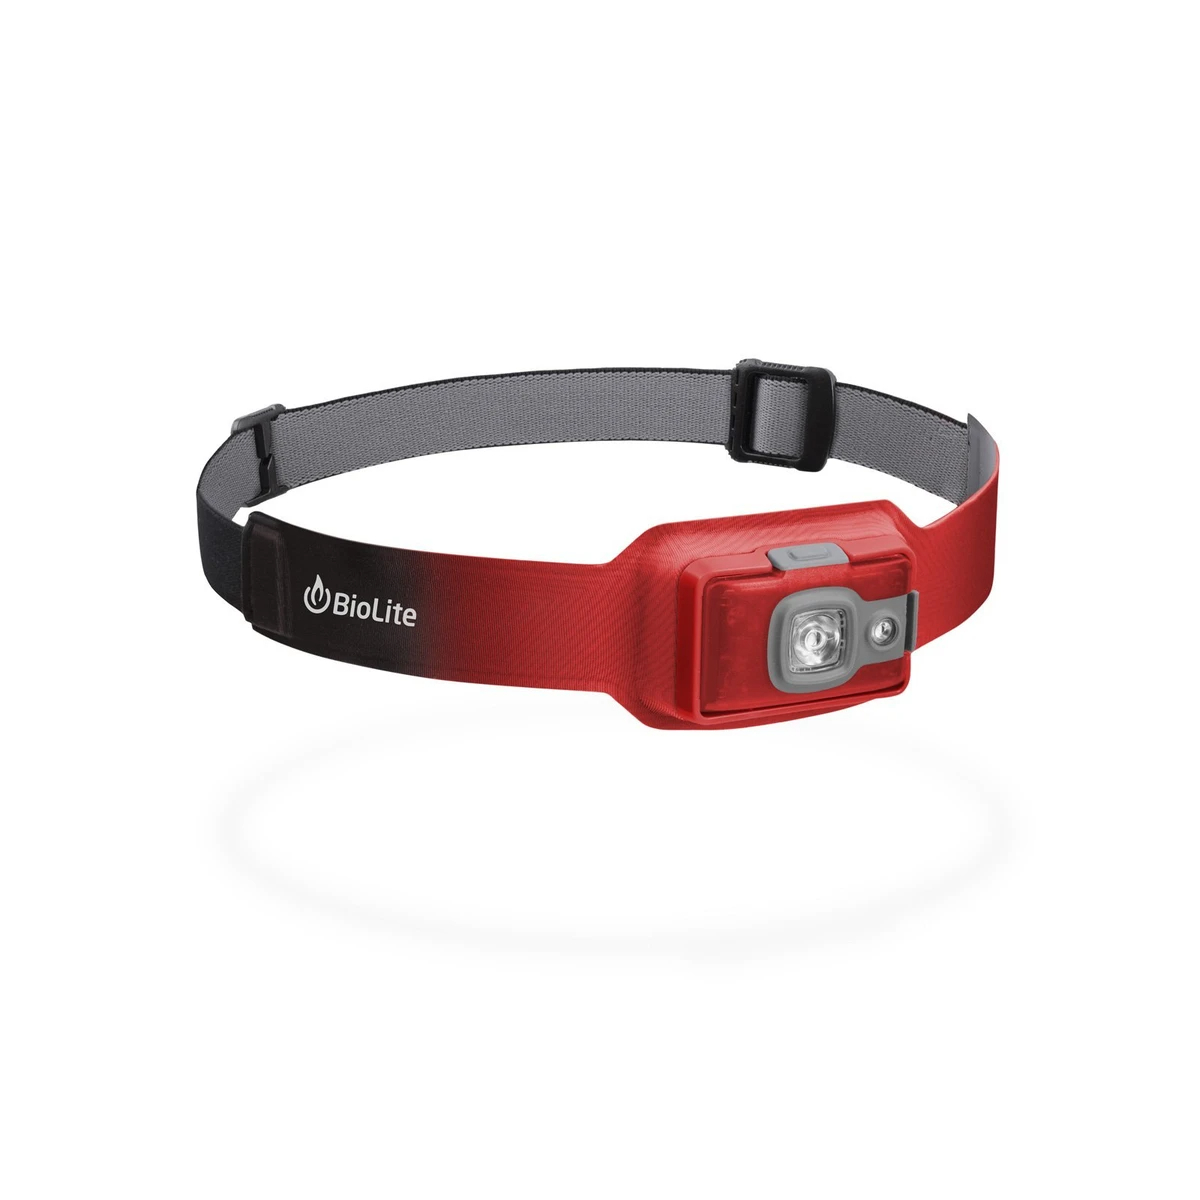 HeadLamp200_red_1200x1200.jpg